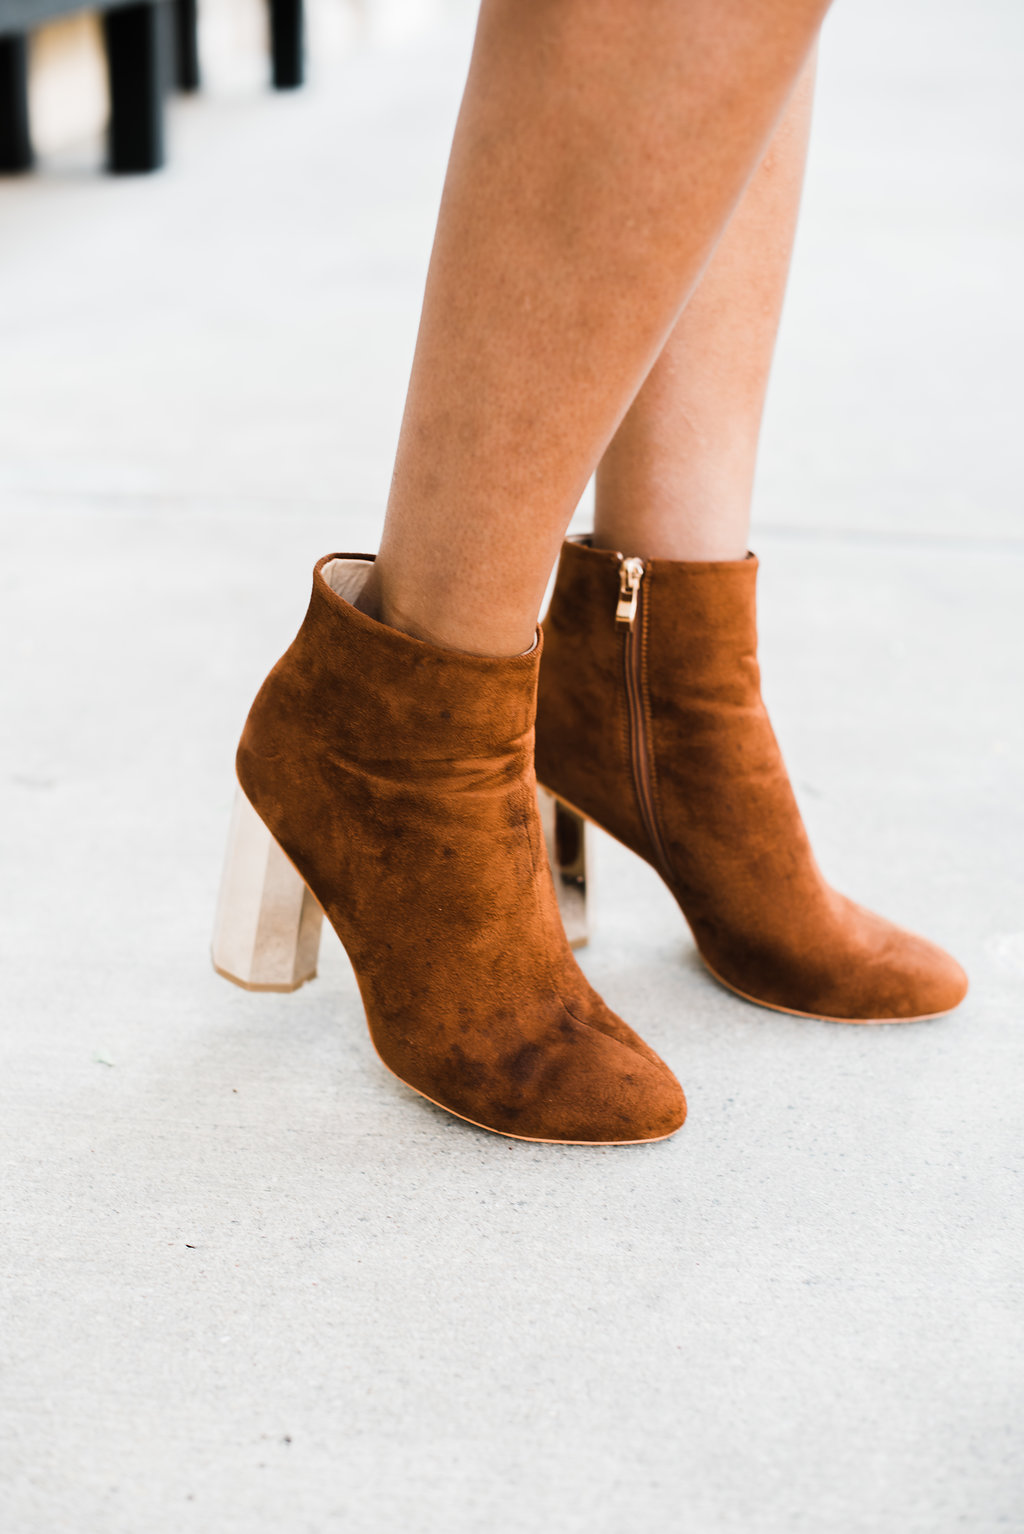 4th and reckless booties